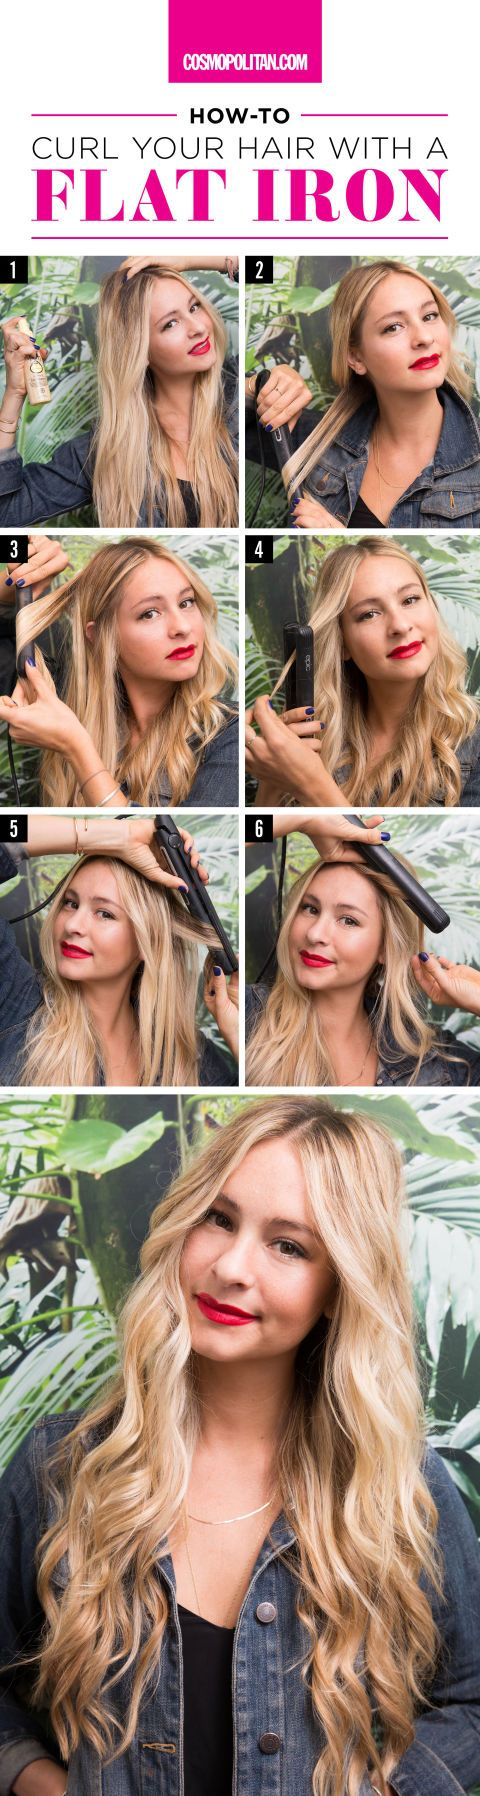 Prime 25 Best Ideas About Flat Iron Hairstyles On Pinterest Flat Iron Hairstyle Inspiration Daily Dogsangcom